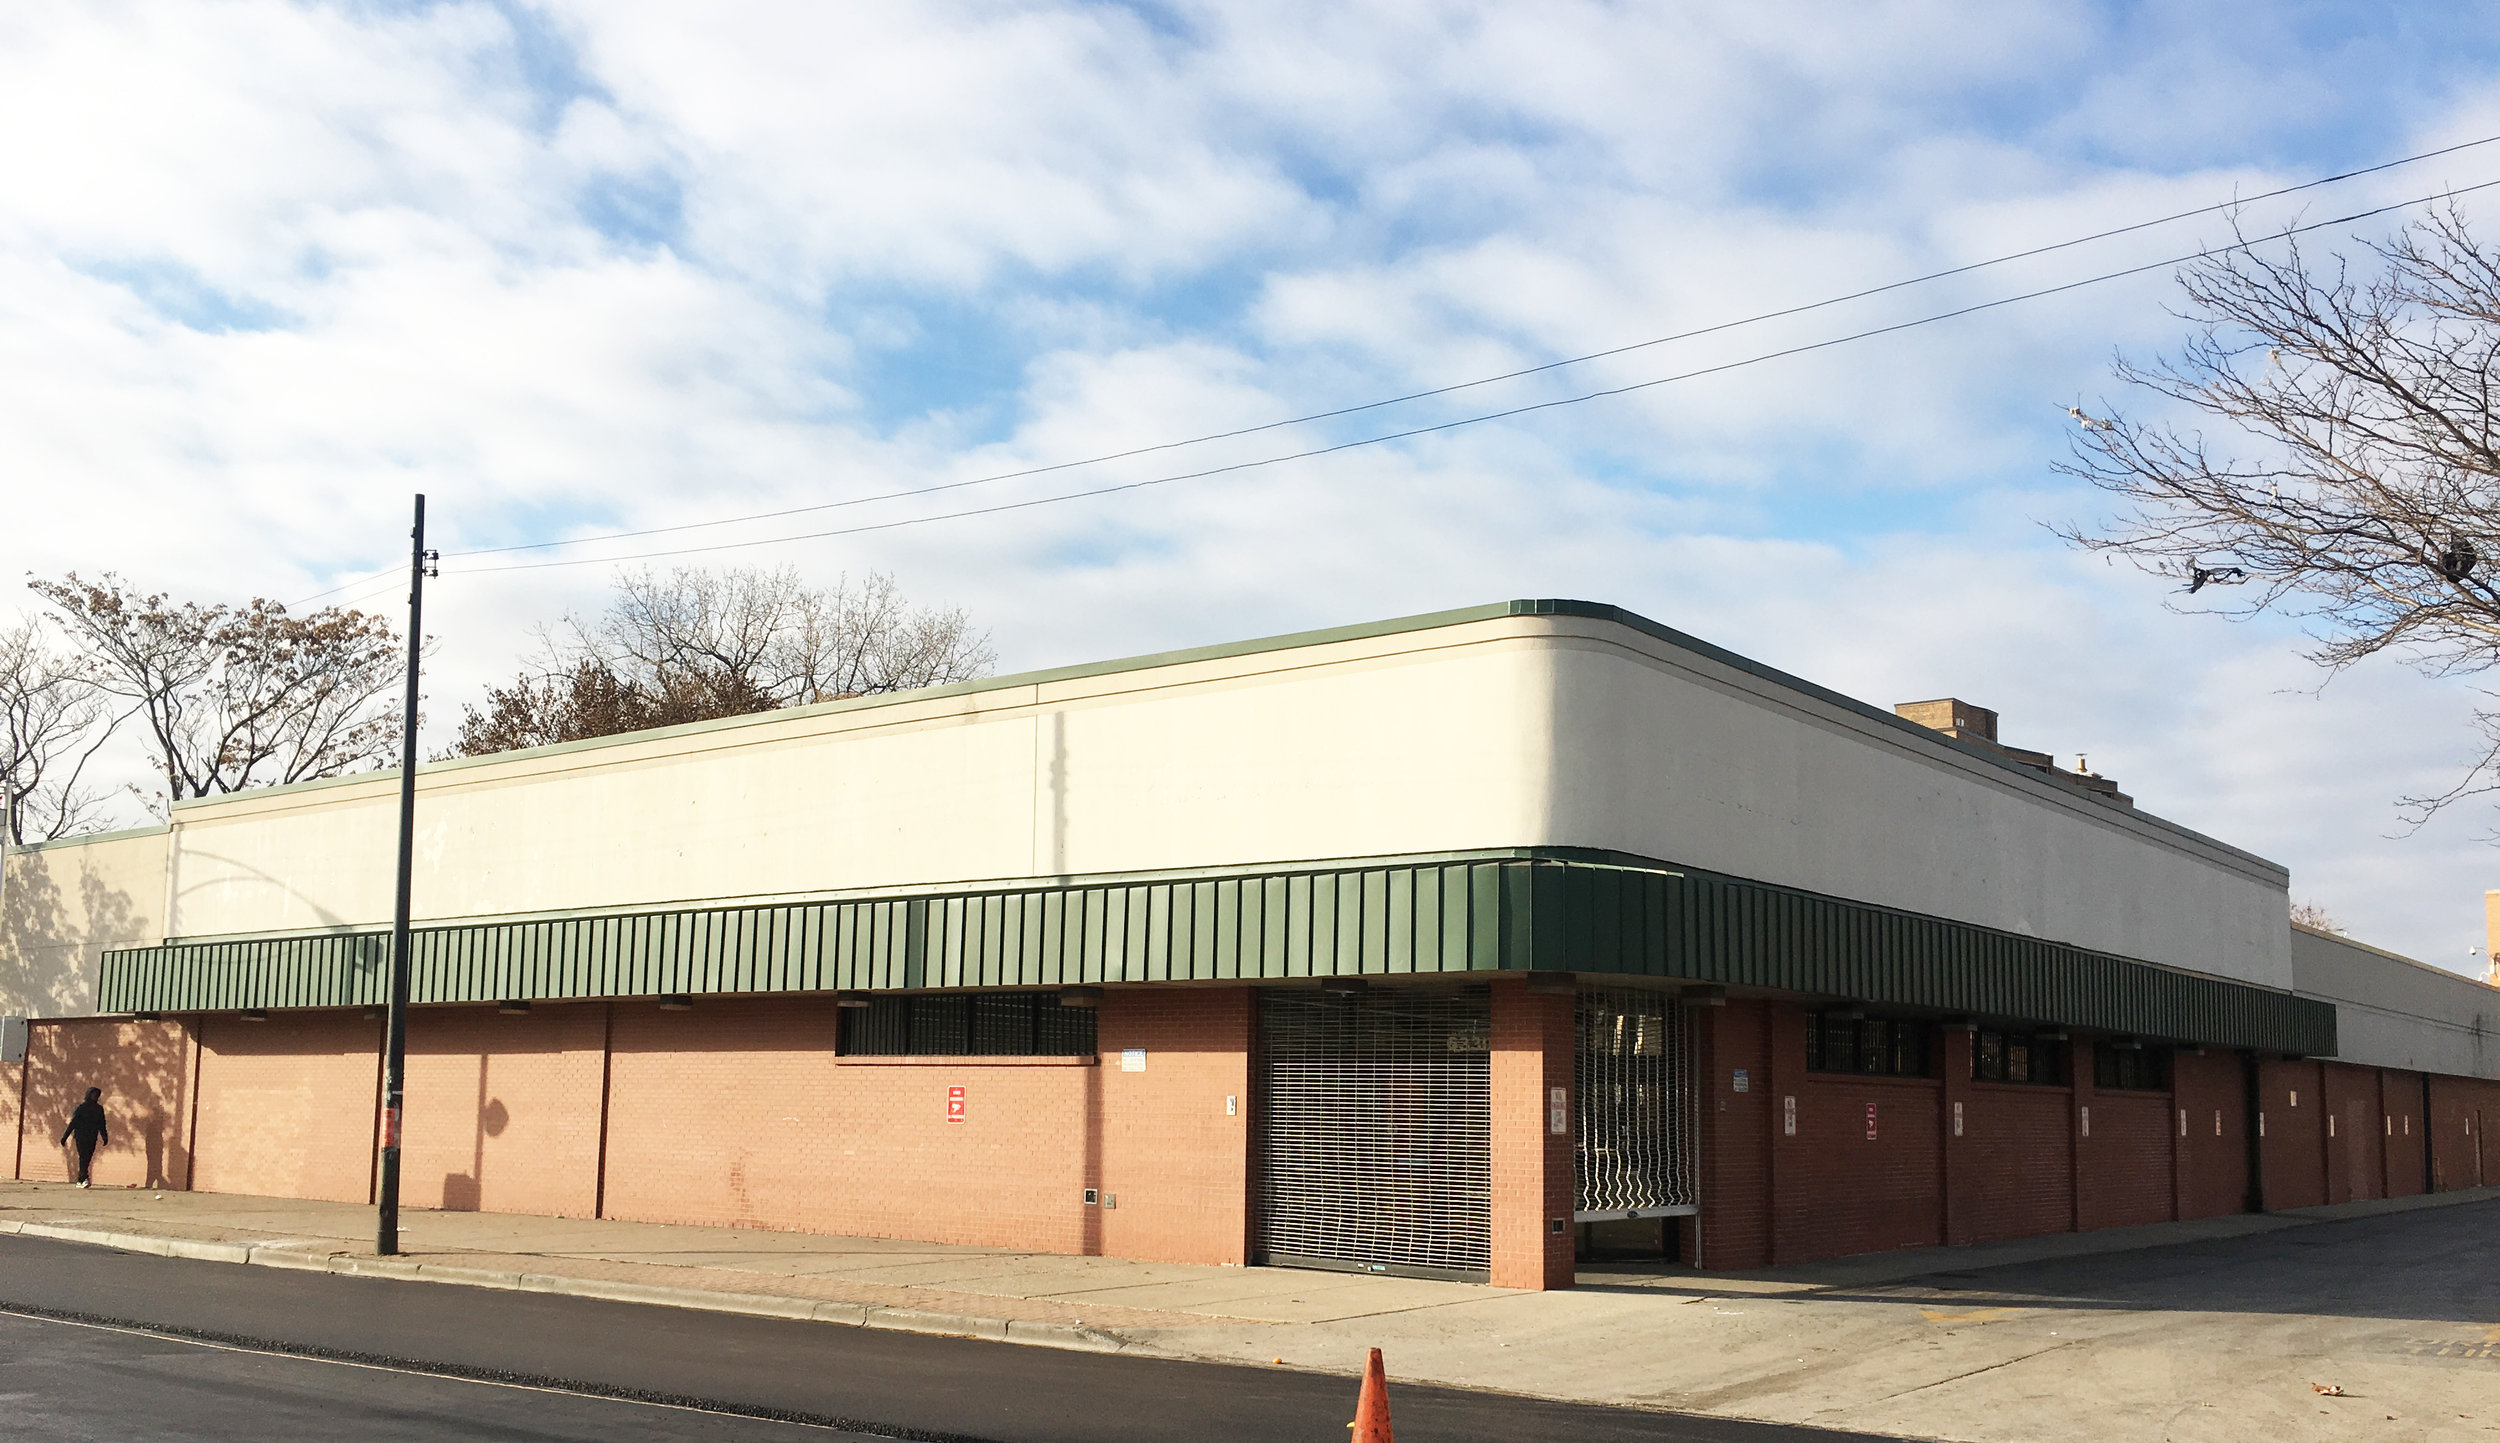 Former Walgreens space at 6330 S. King Drive